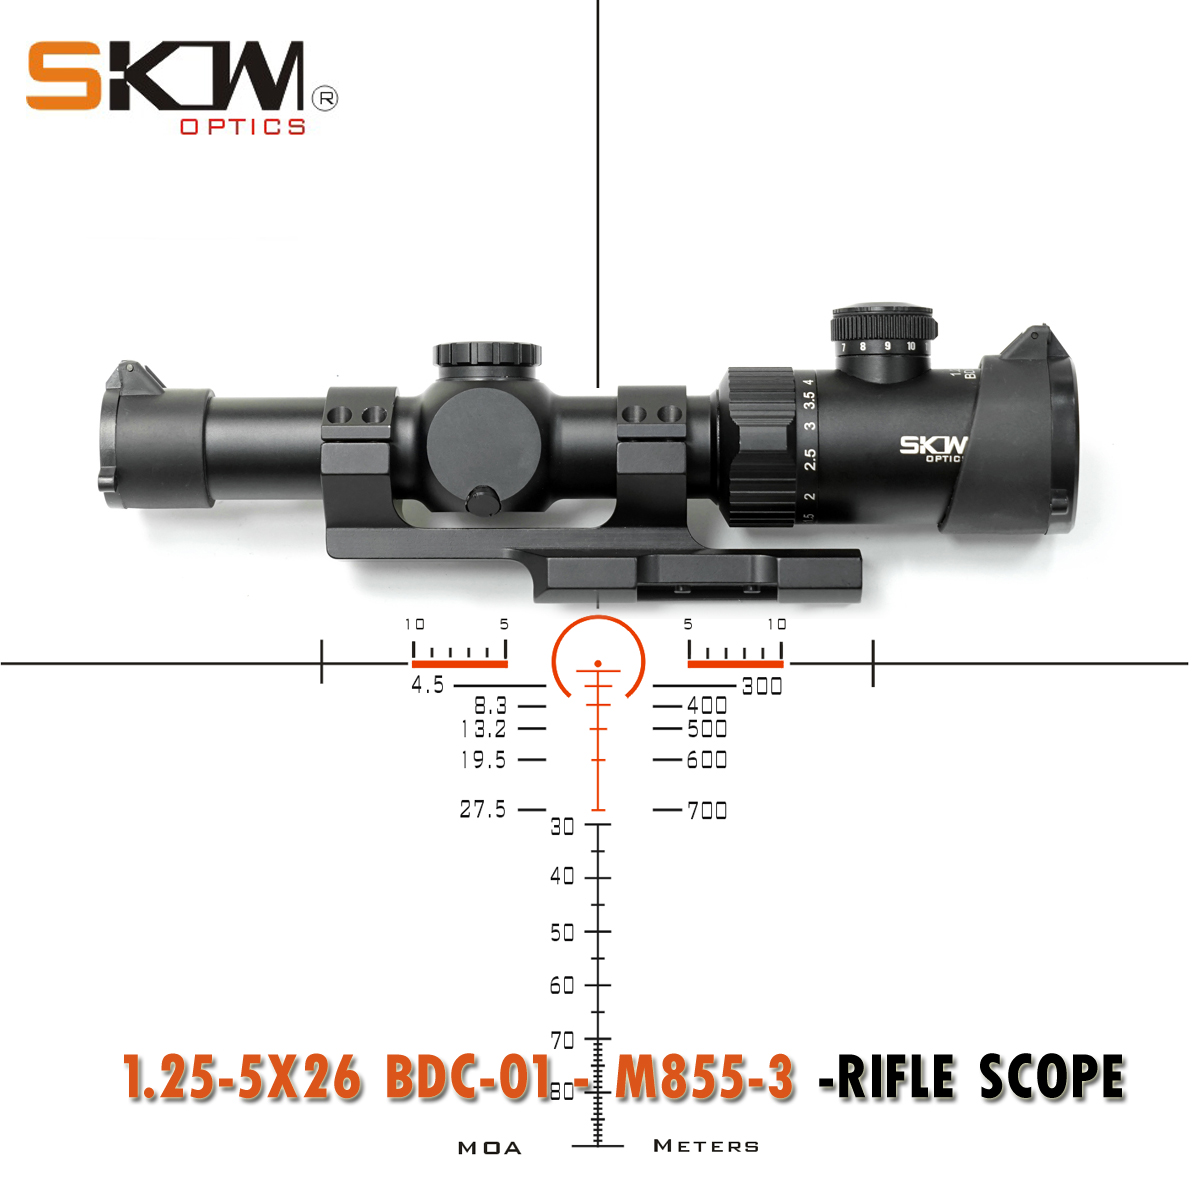 SKWoptics1.25-5x26bdc-01-M855-3 Tactical Riflescopes Hunting AR,M4  Sight Compact Rifle Scope Ar15 BDC Reticle 30 Scope Rings